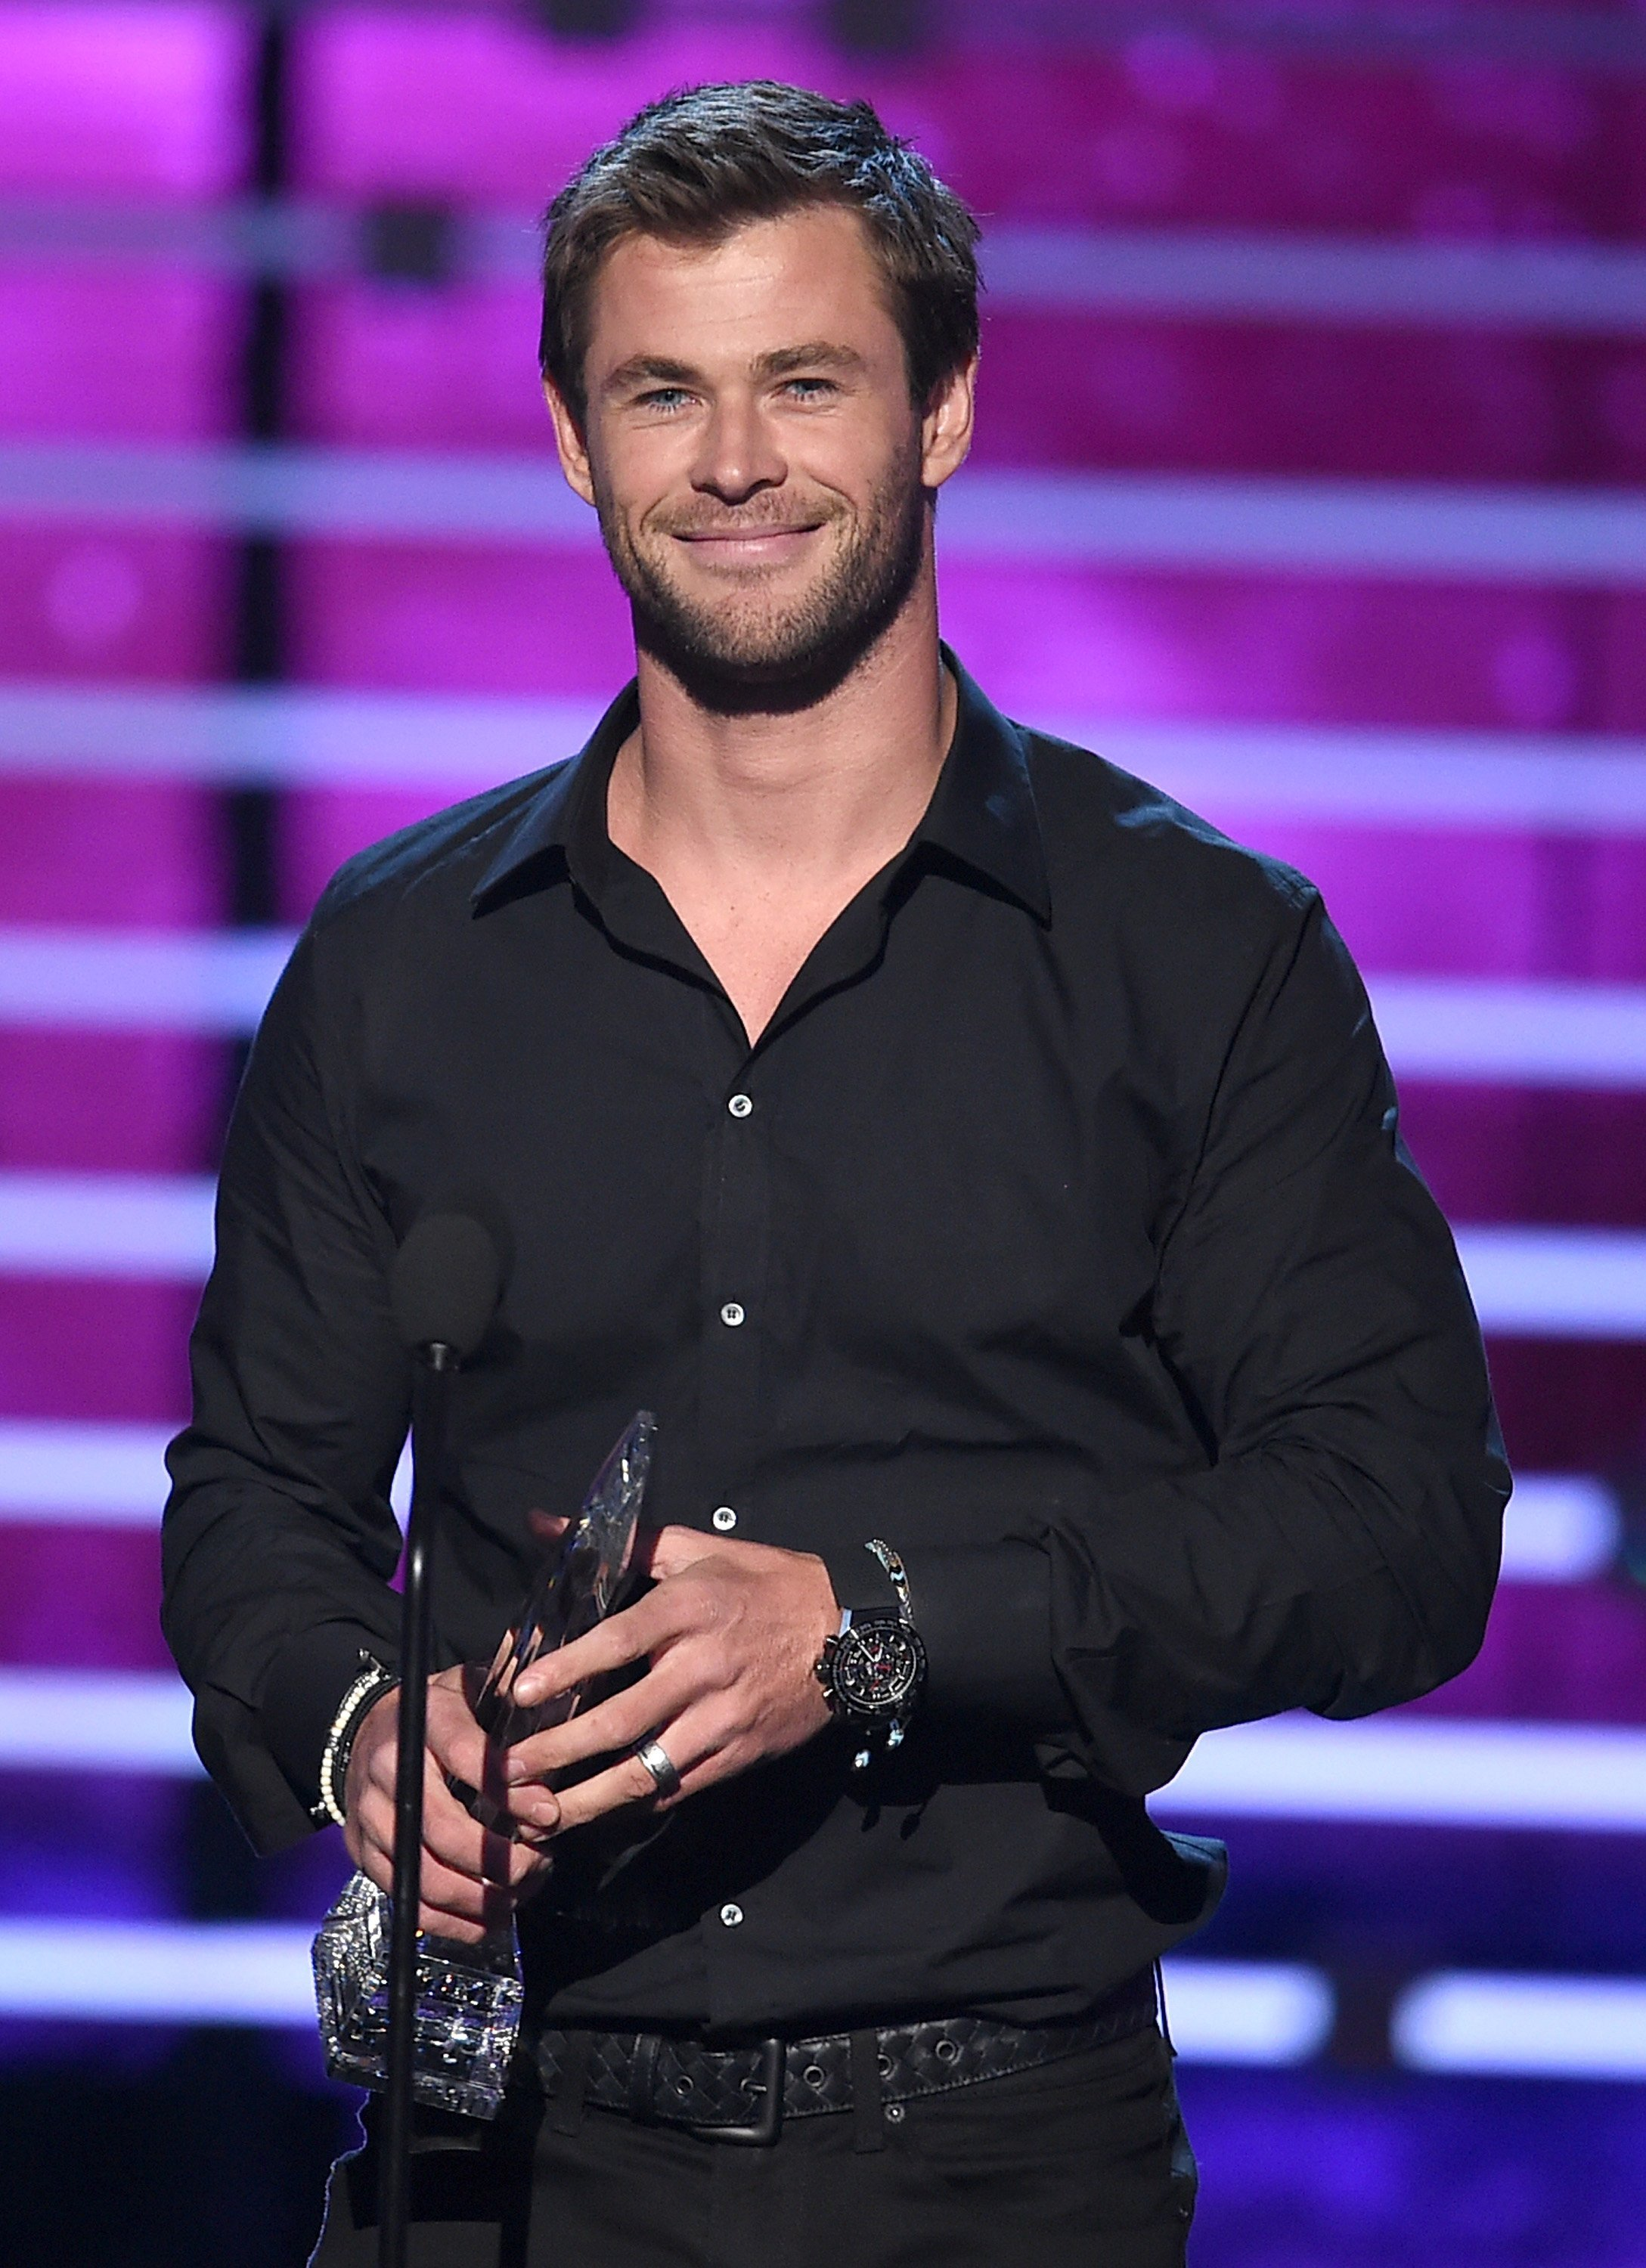 Chris Hemsworth accepts Favorite Action Movie Actor award onstage during the People's Choice Awards 2016 at Microsoft Theater on January 6, 2016, in Los Angeles, California. | Source: Getty Images.